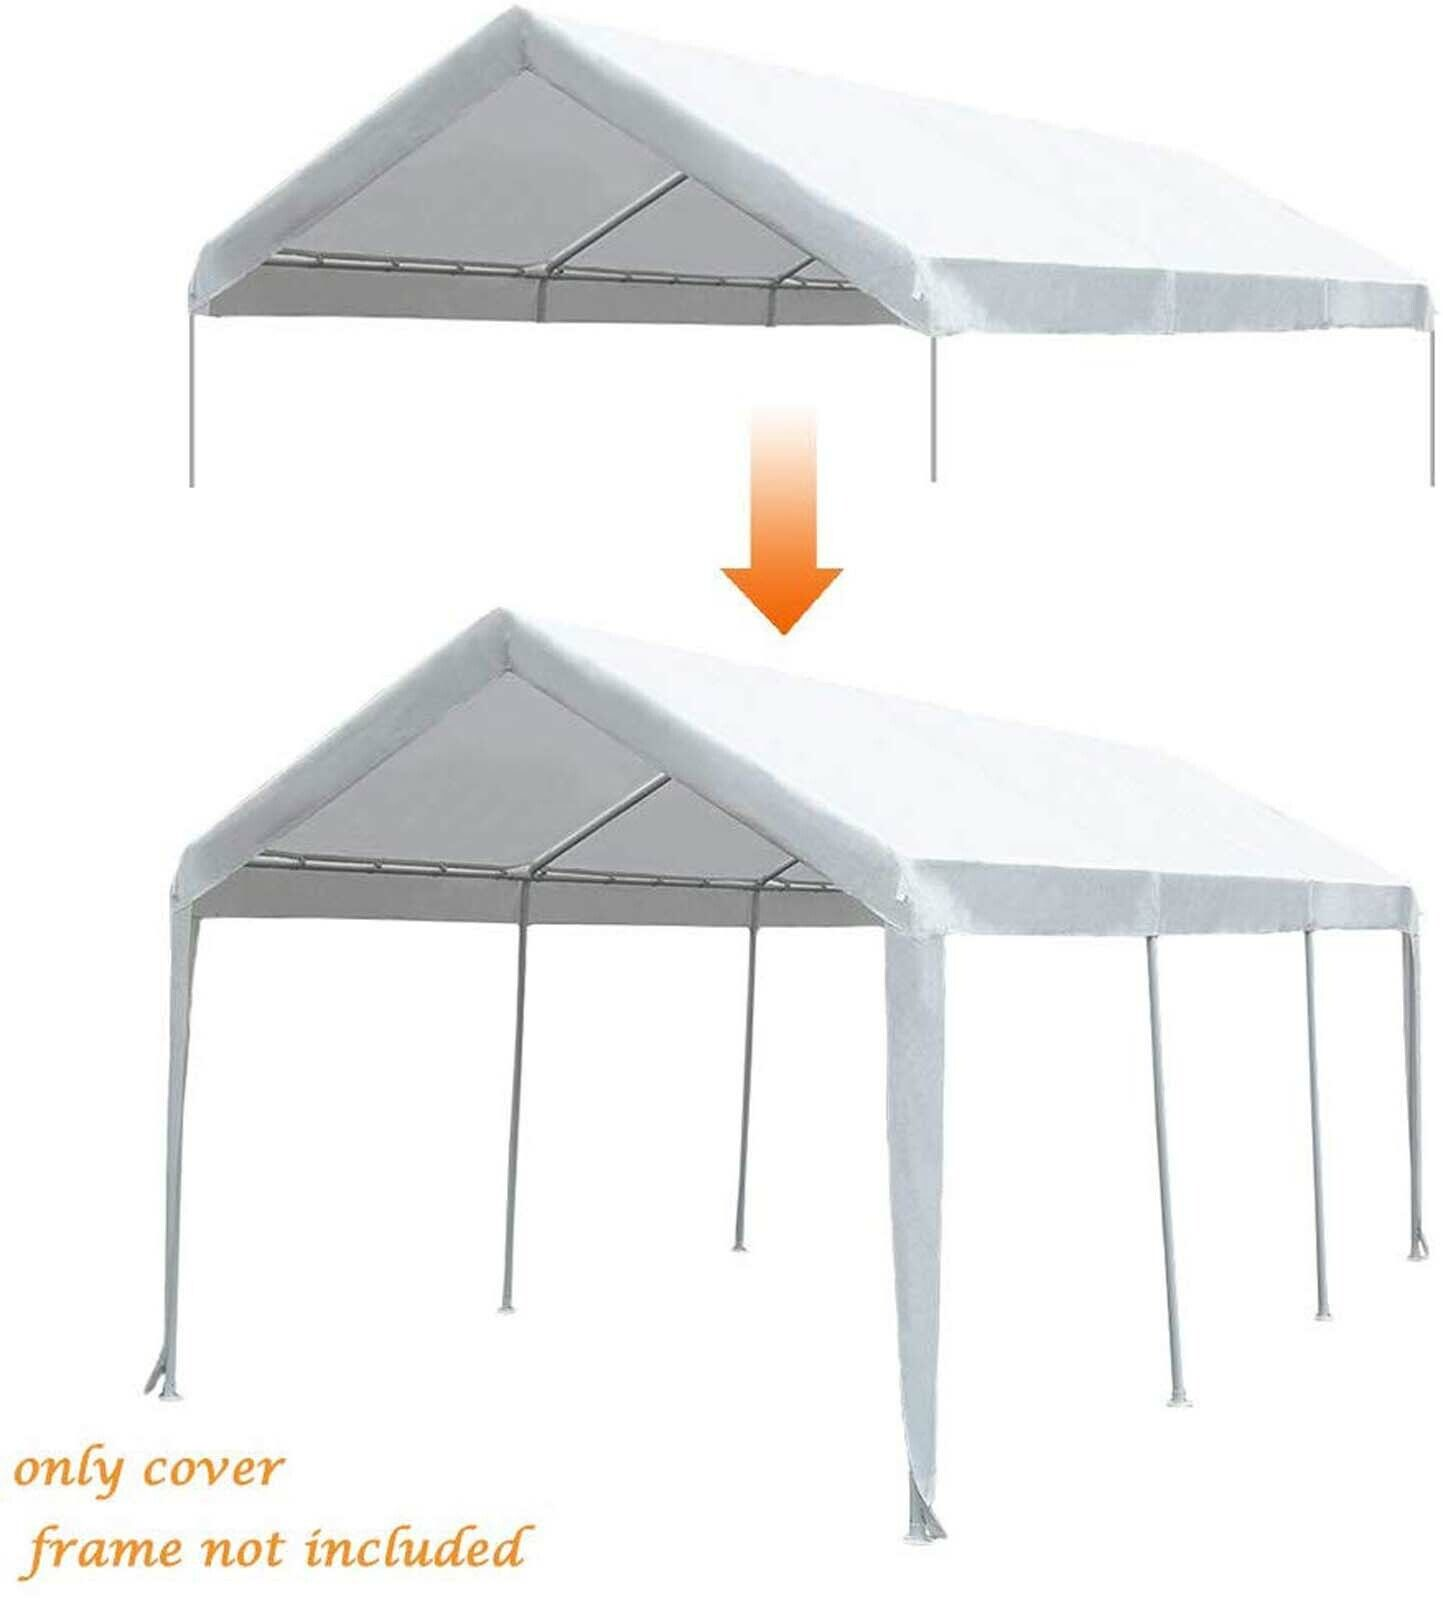 10'x20' Auto Shelter Portable Garage Shed Canopy Carport Sid